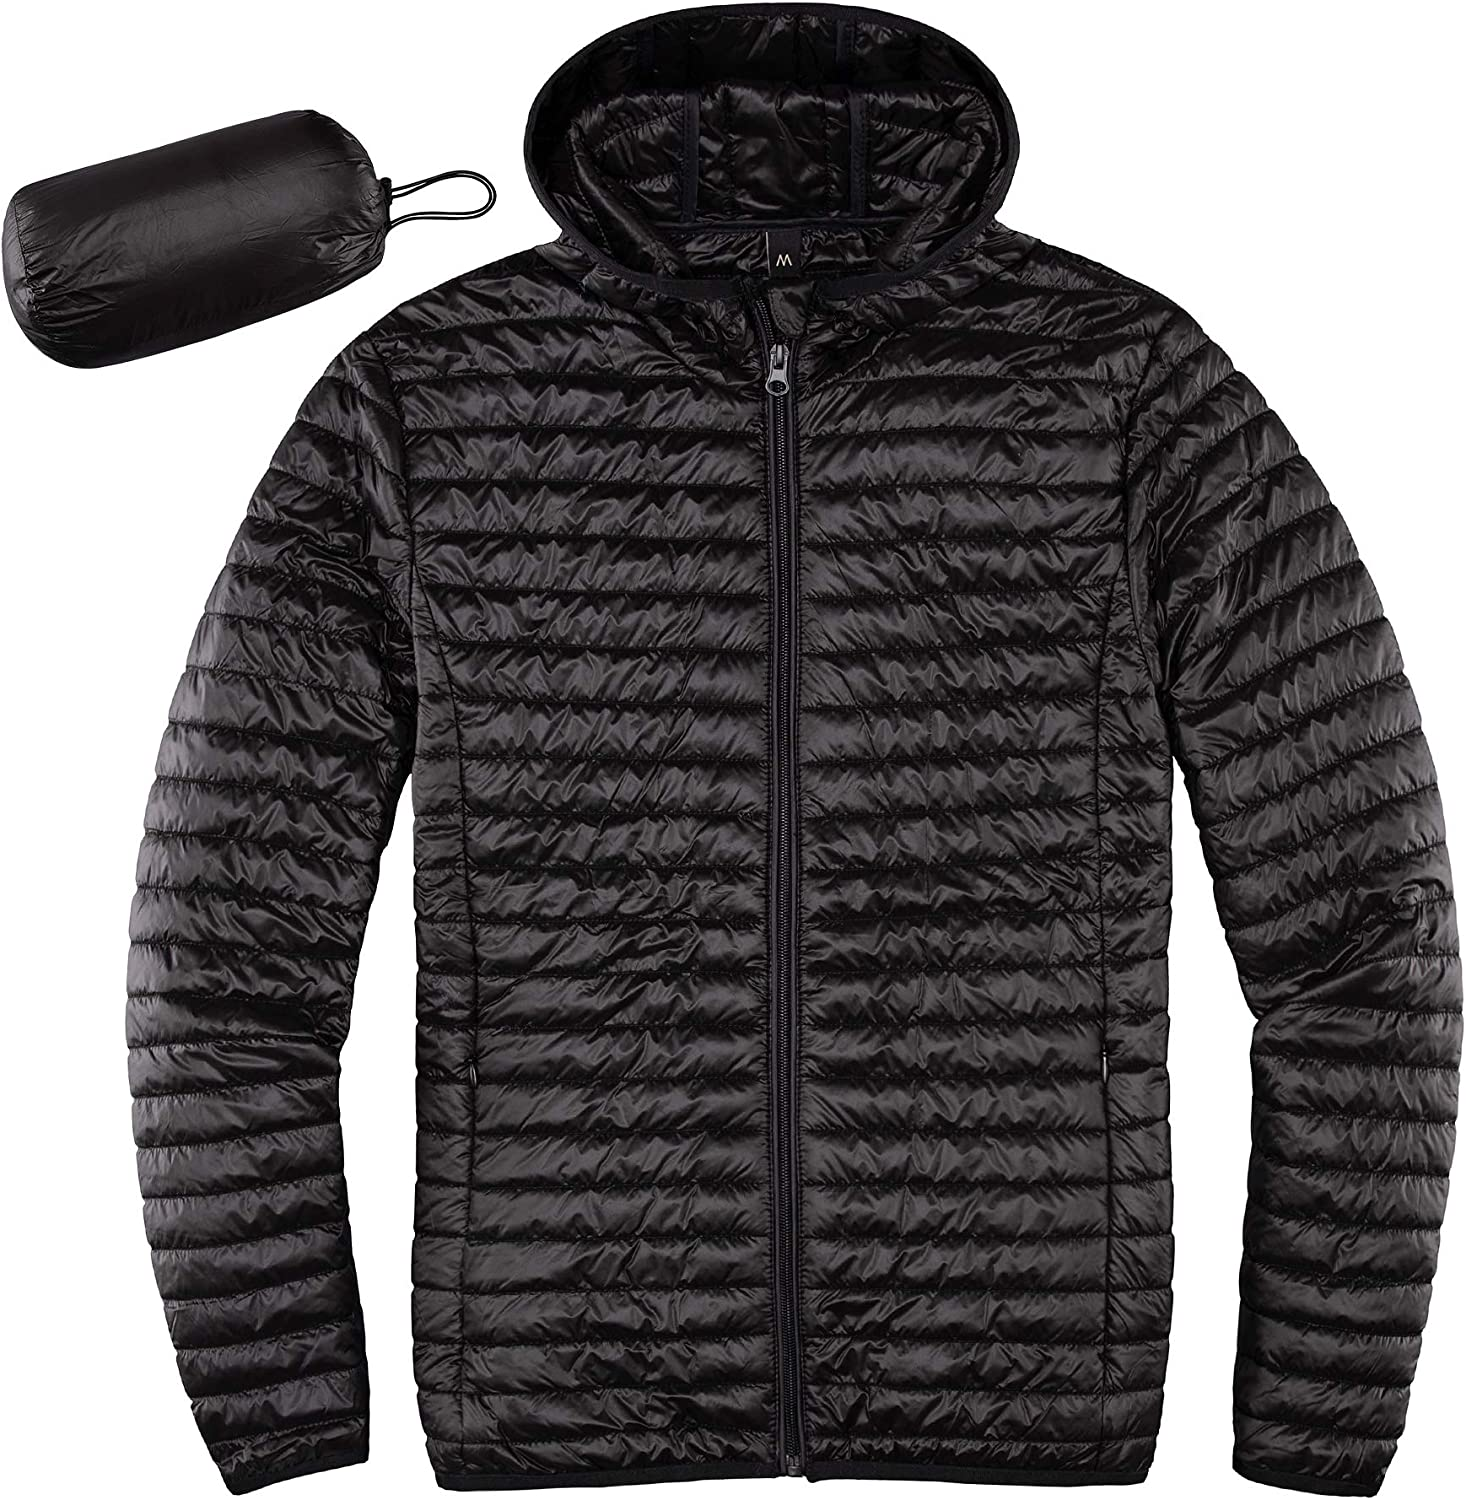 Lisskolo Men's Lightweight Quilted Ultra Loft Packable Puffer Hooded Jacket Synthetic Insulated Jackets